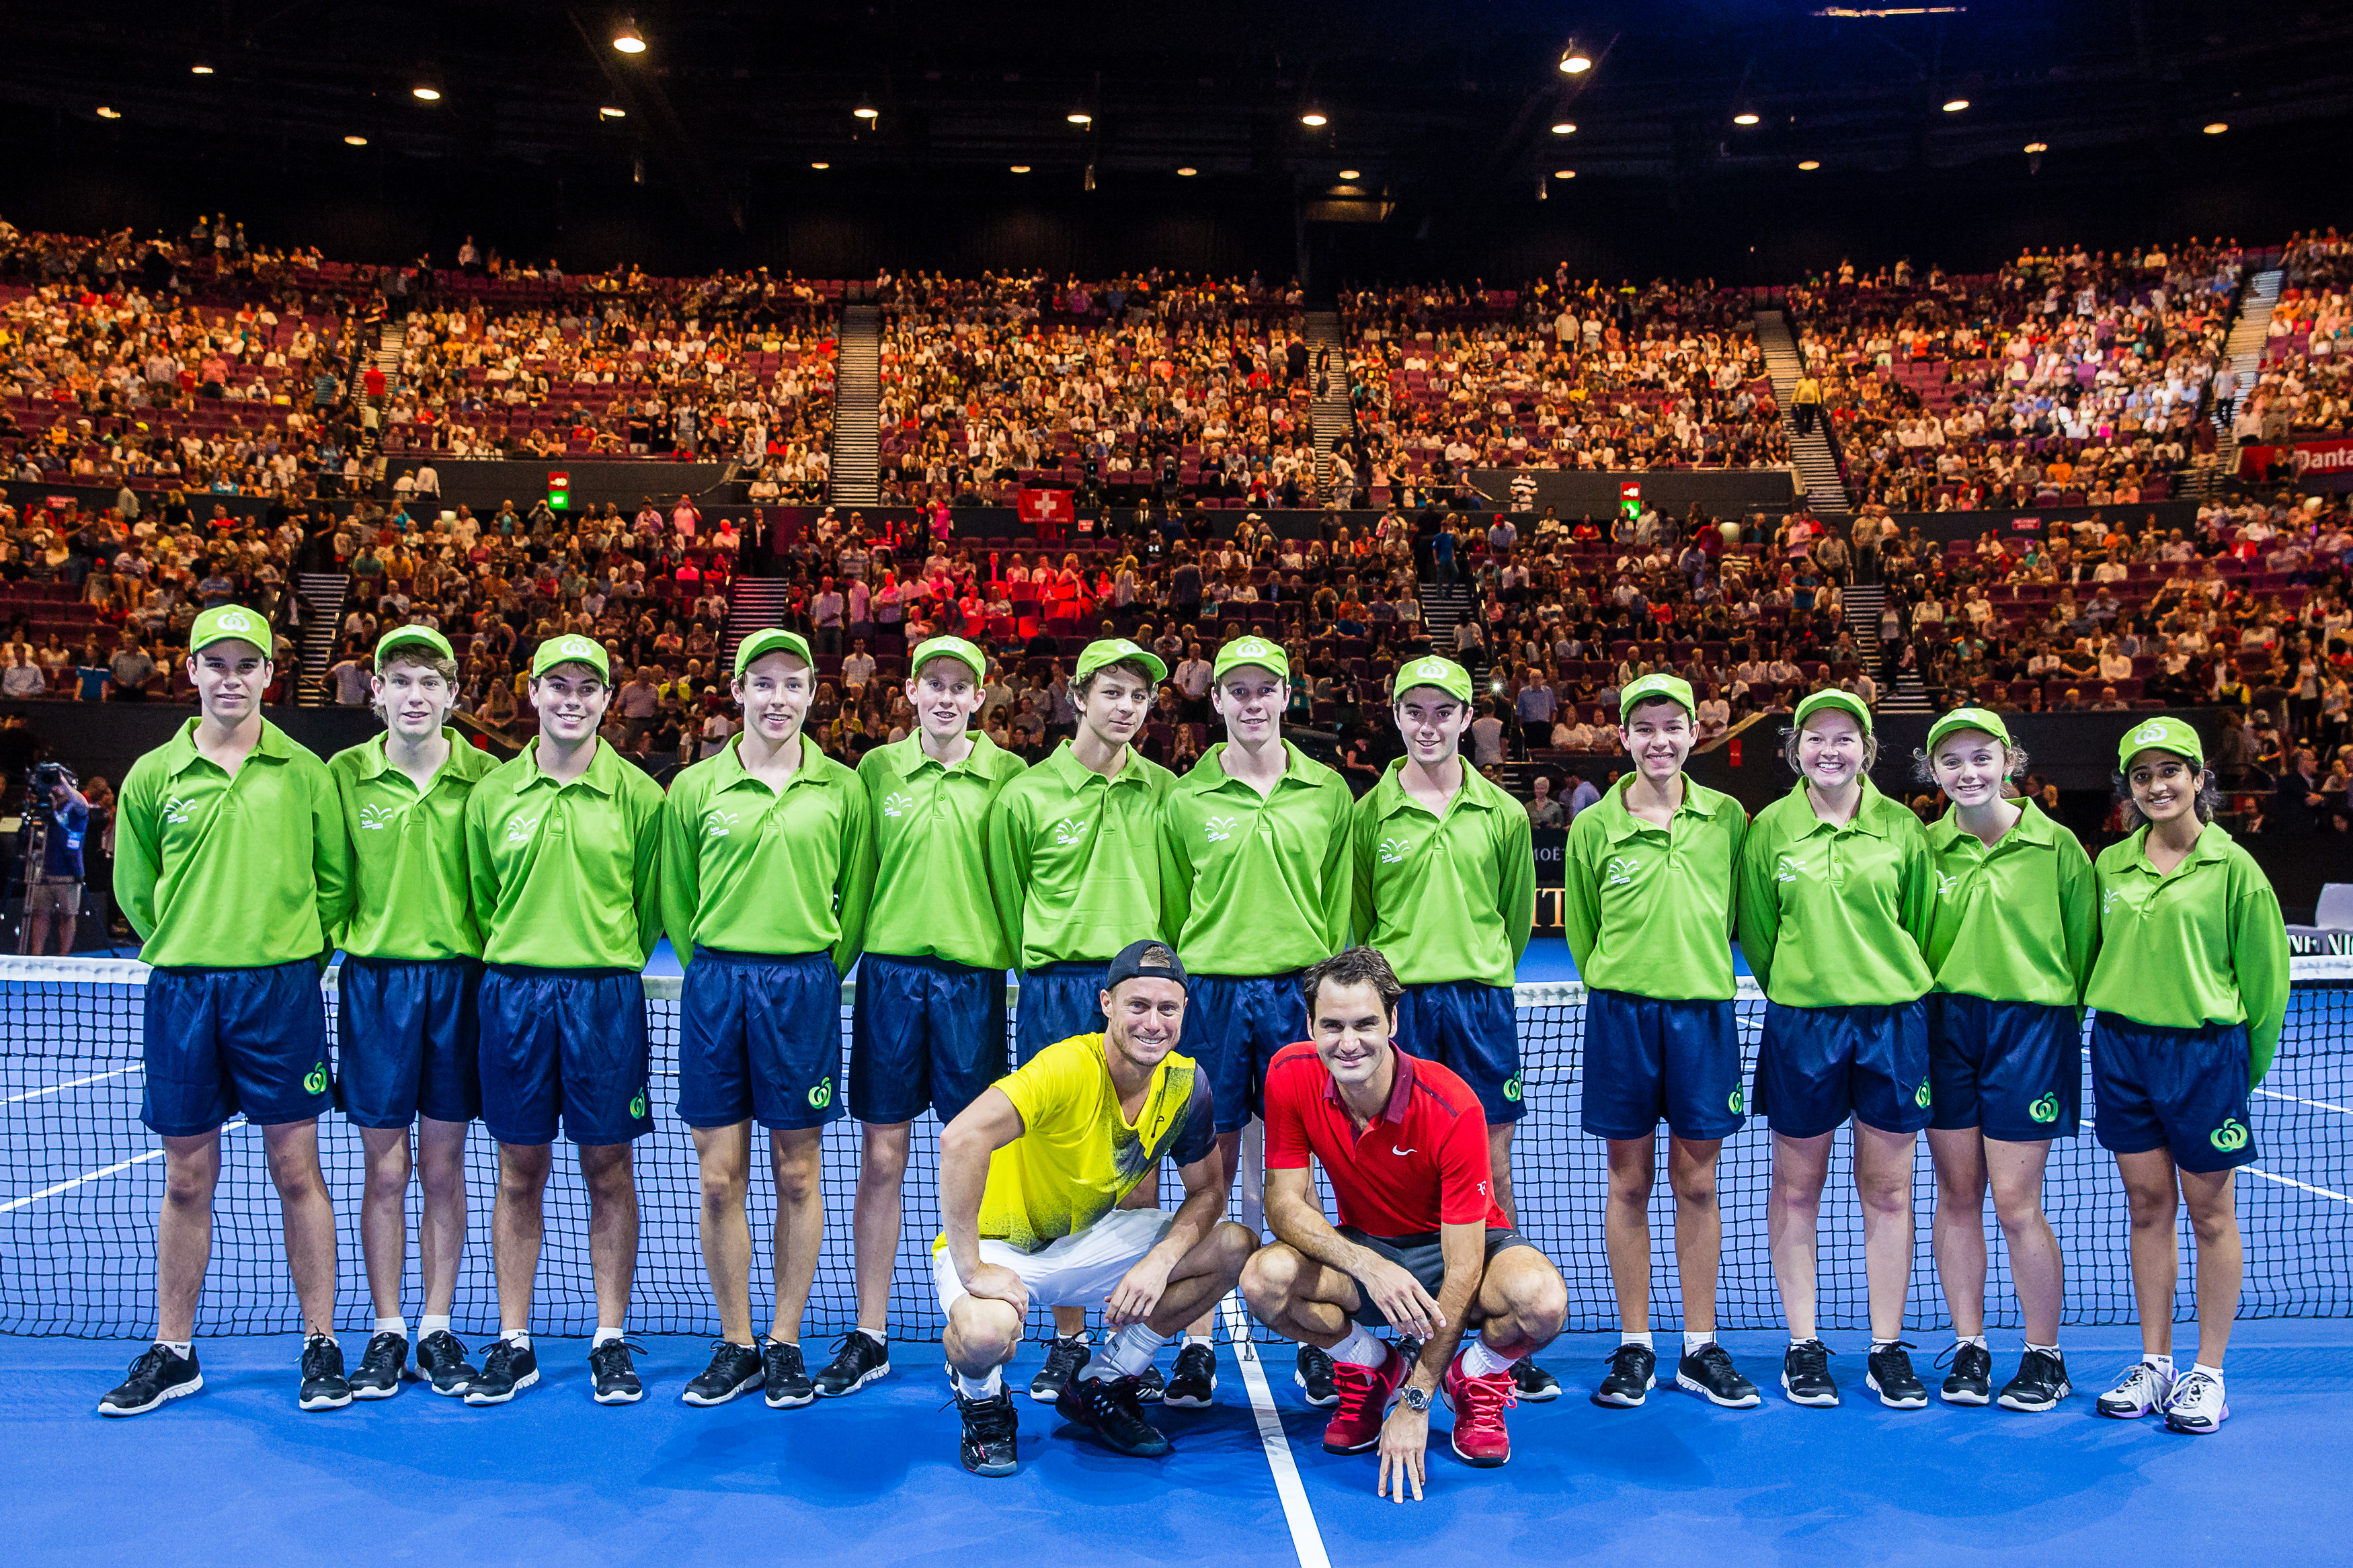 top ballkids honoured at melbourne park 26 2013 all tennis promotional event federer and hewitt